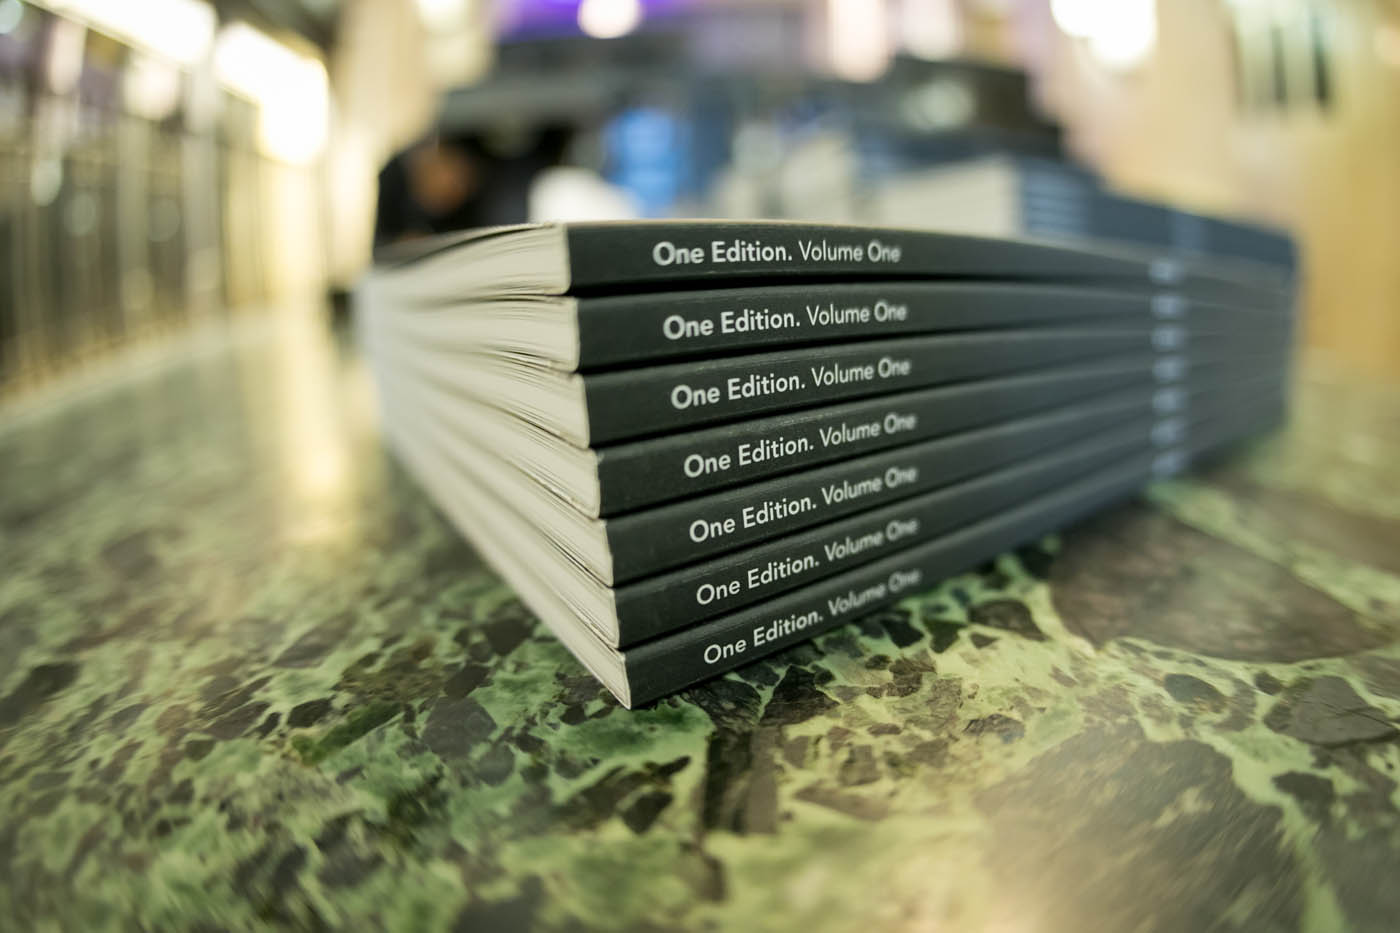 One Question programme, edition 1 and volume 1